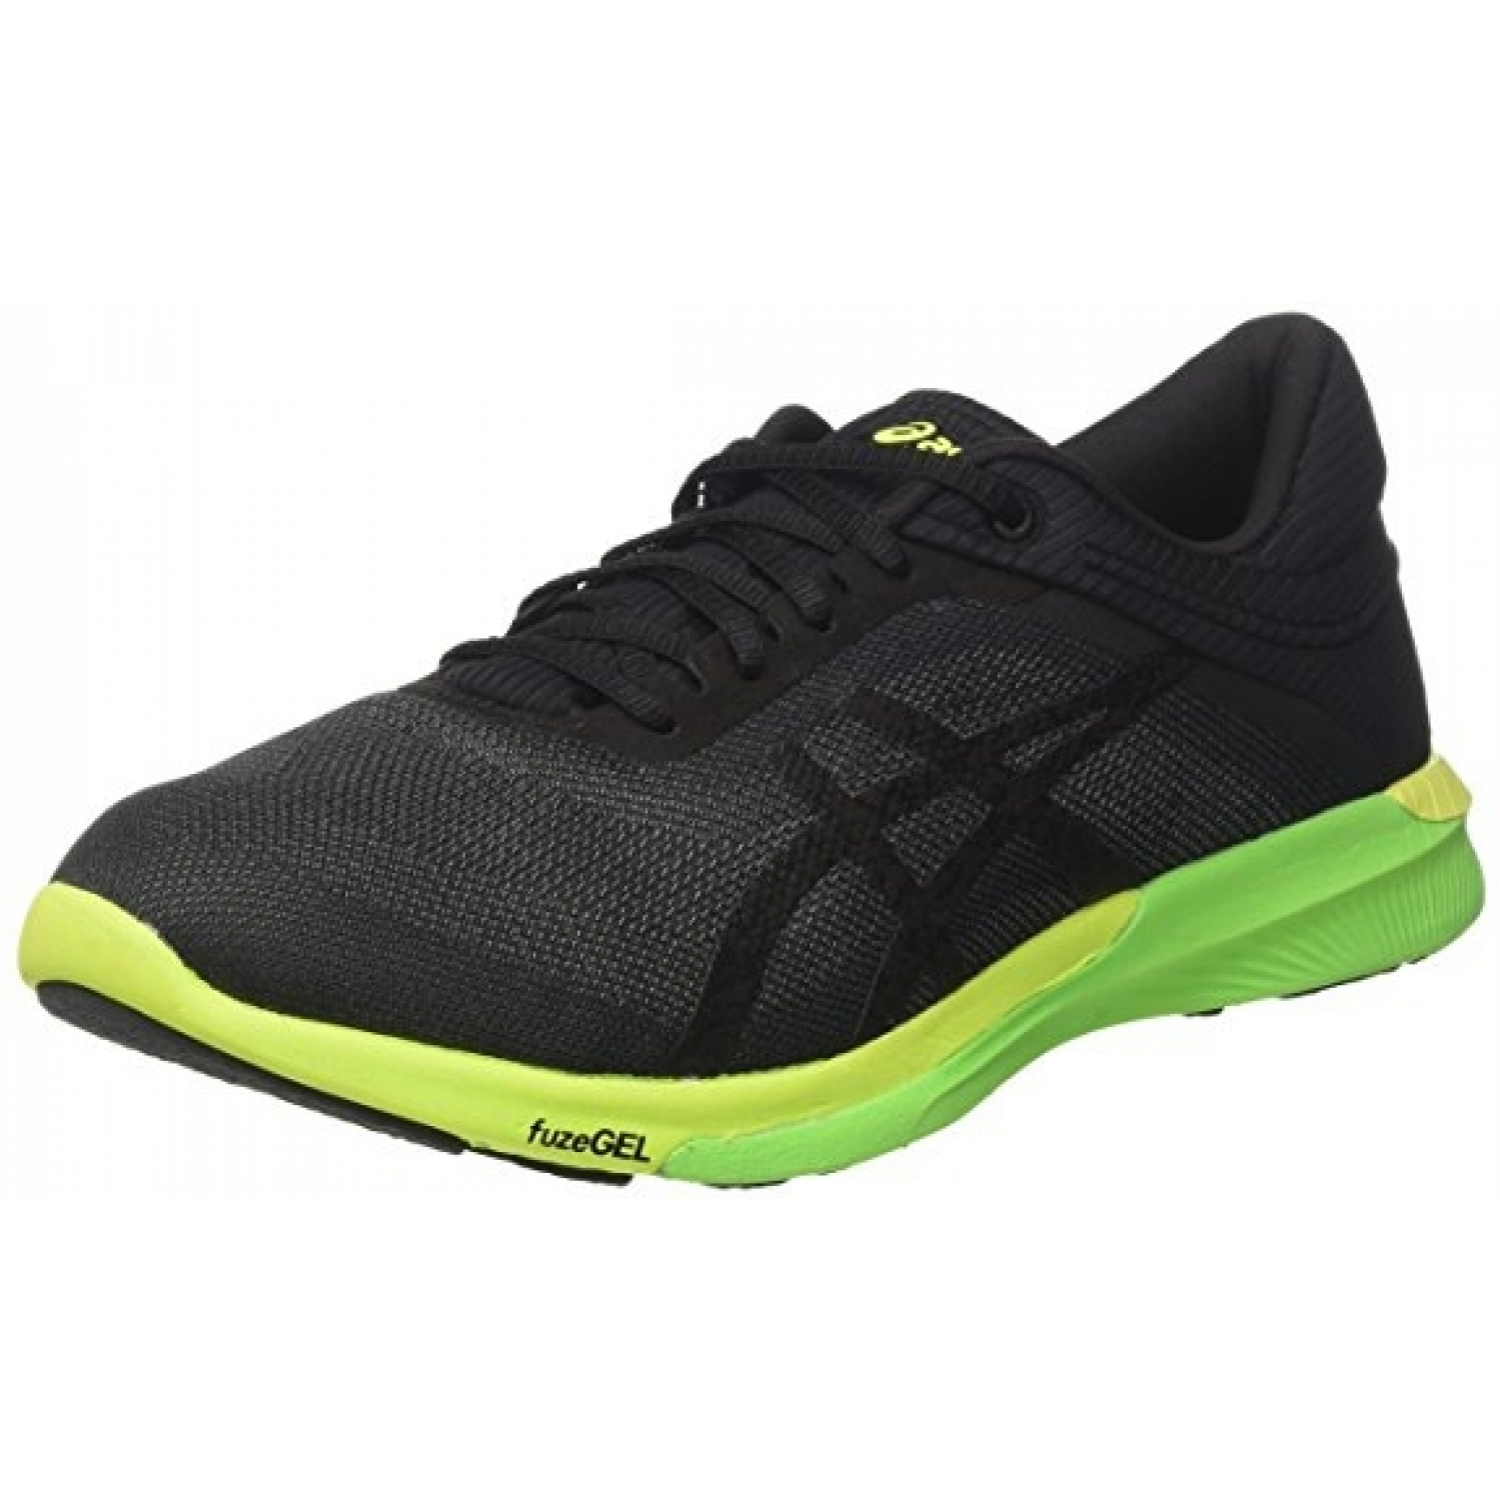 Asics FuzeX Rush Carbon/Black/Safety Yellow Laufschuhe EU Gr. 42 (7,5)